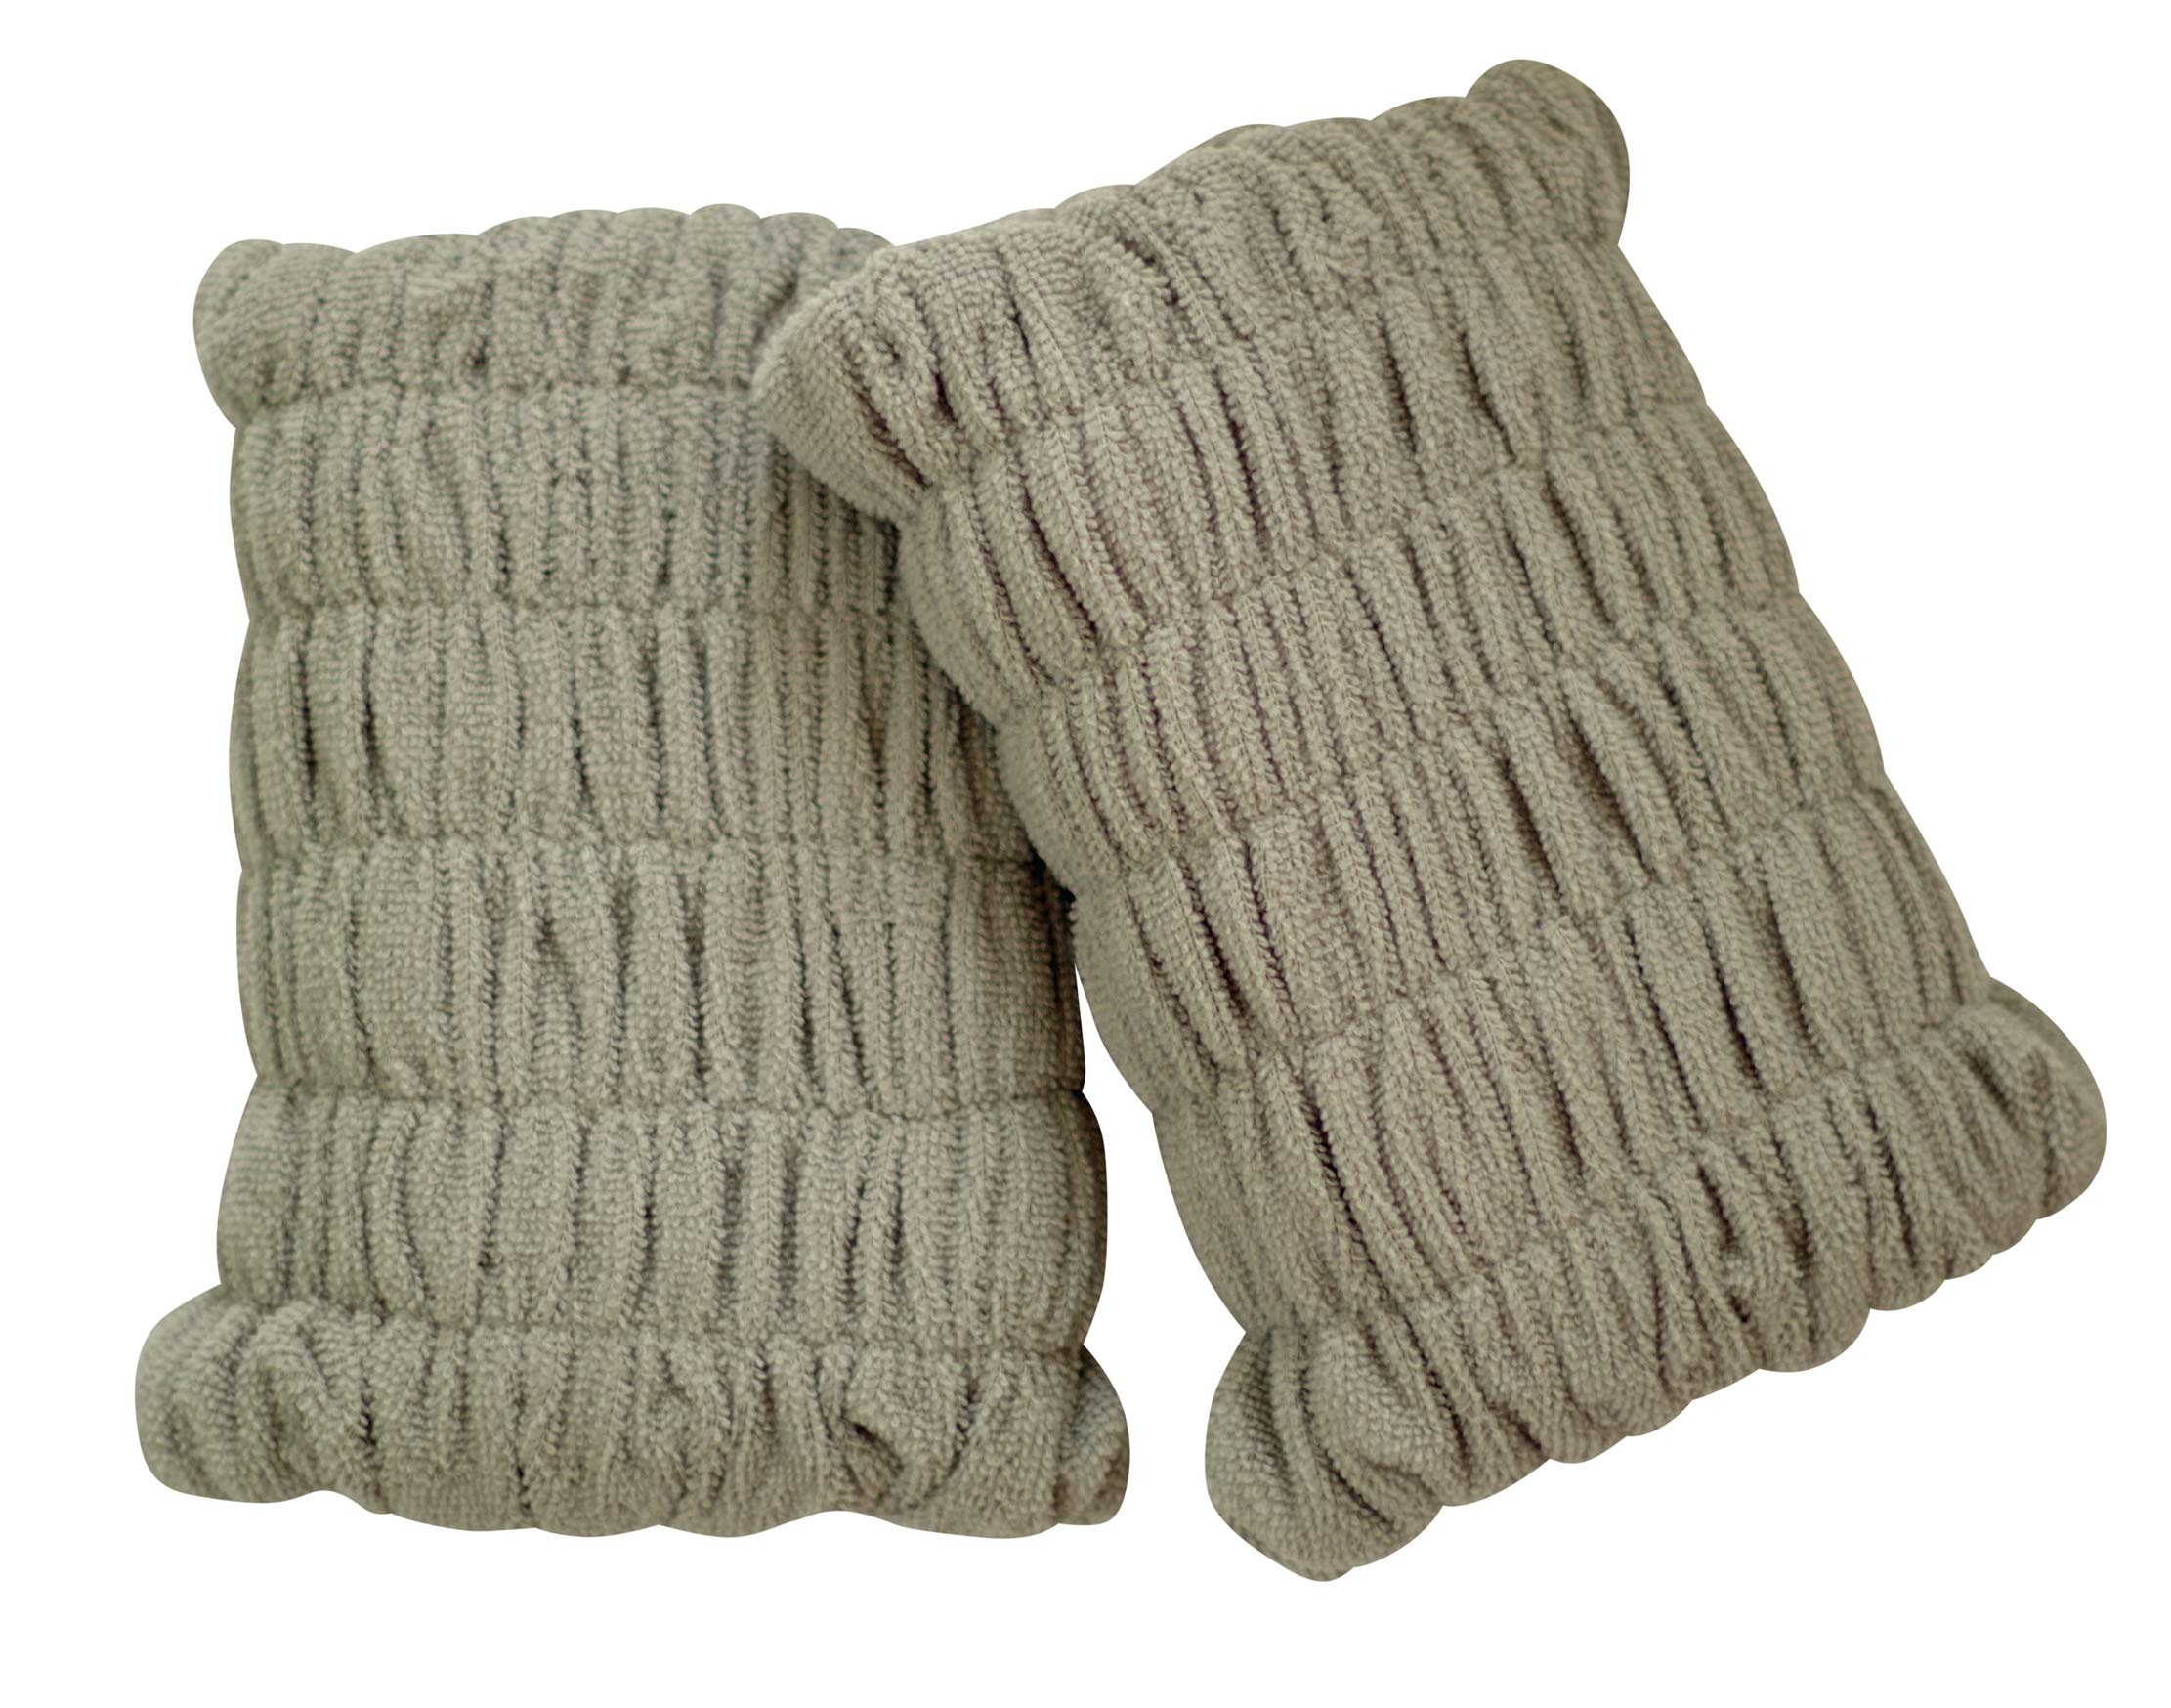 Pull-On Knee Cushions Wear The Pair! (Gray)